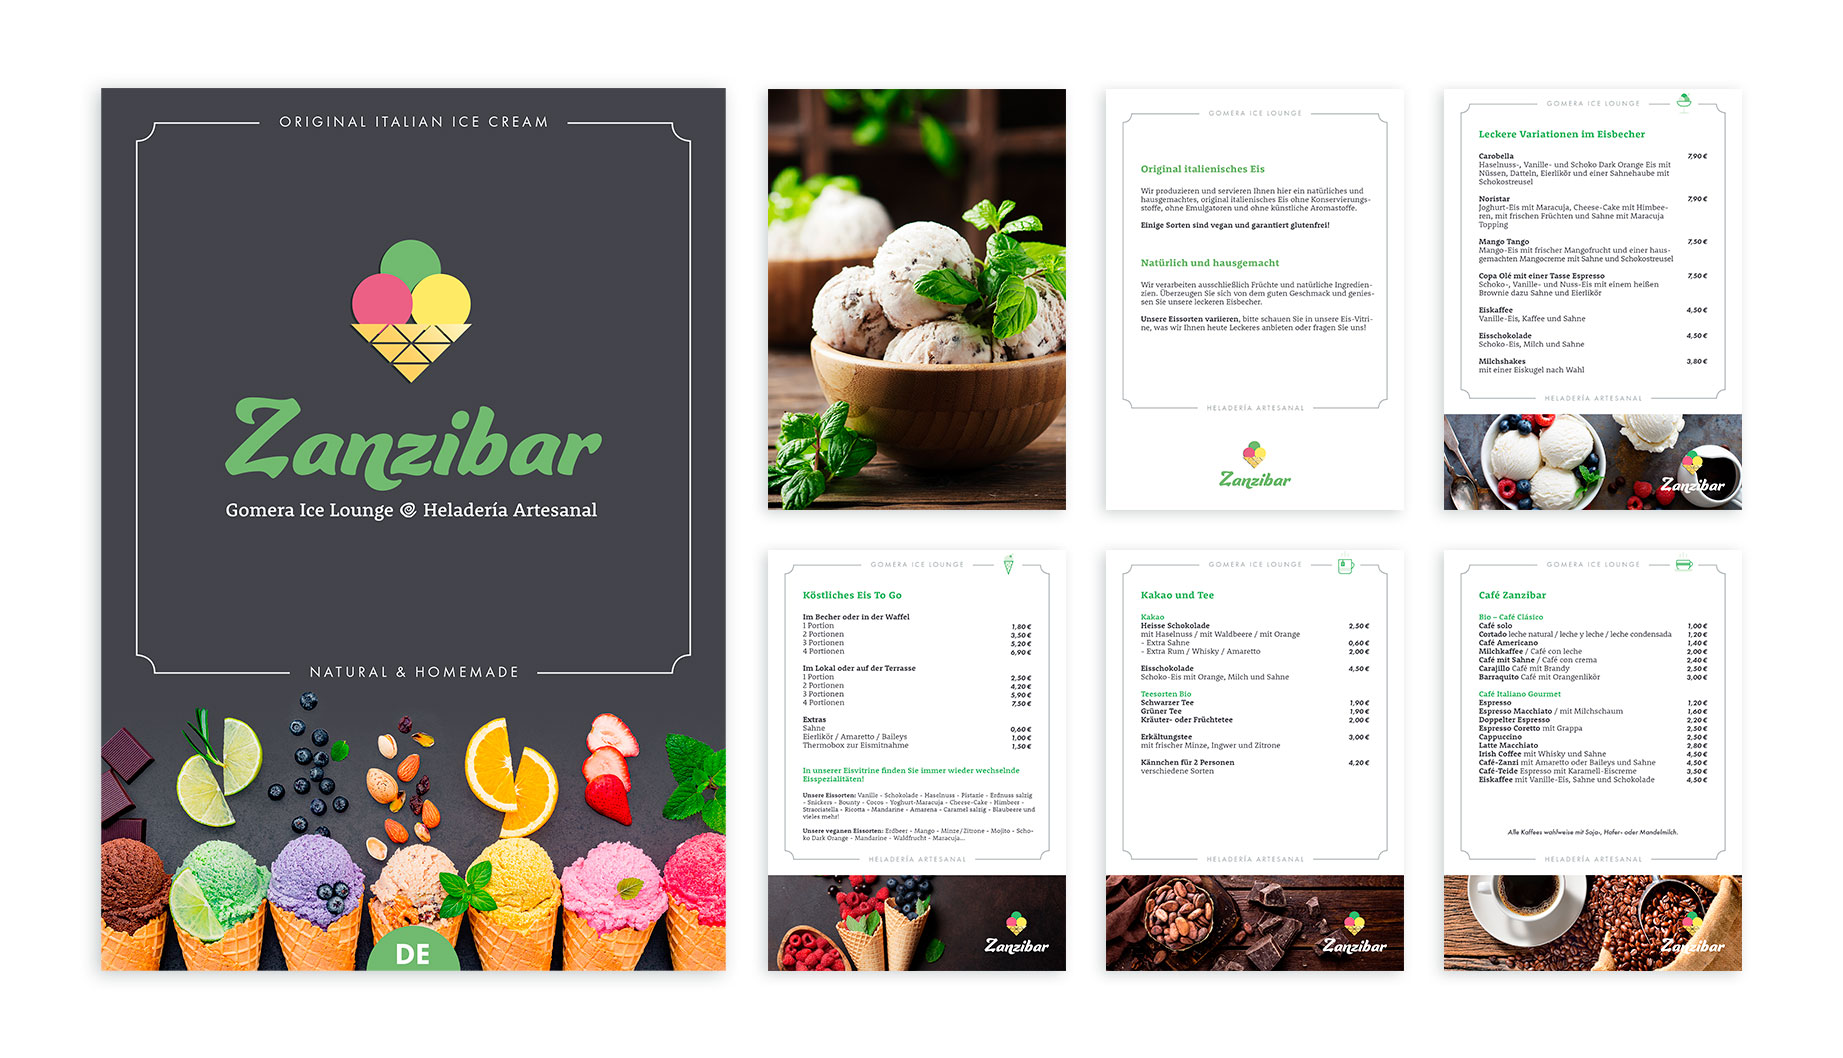 Zanzibar - Art Director - Corporate Identity - Corporate Text and Design - Brand Concept - Menu Design - Icon Design - Final Art